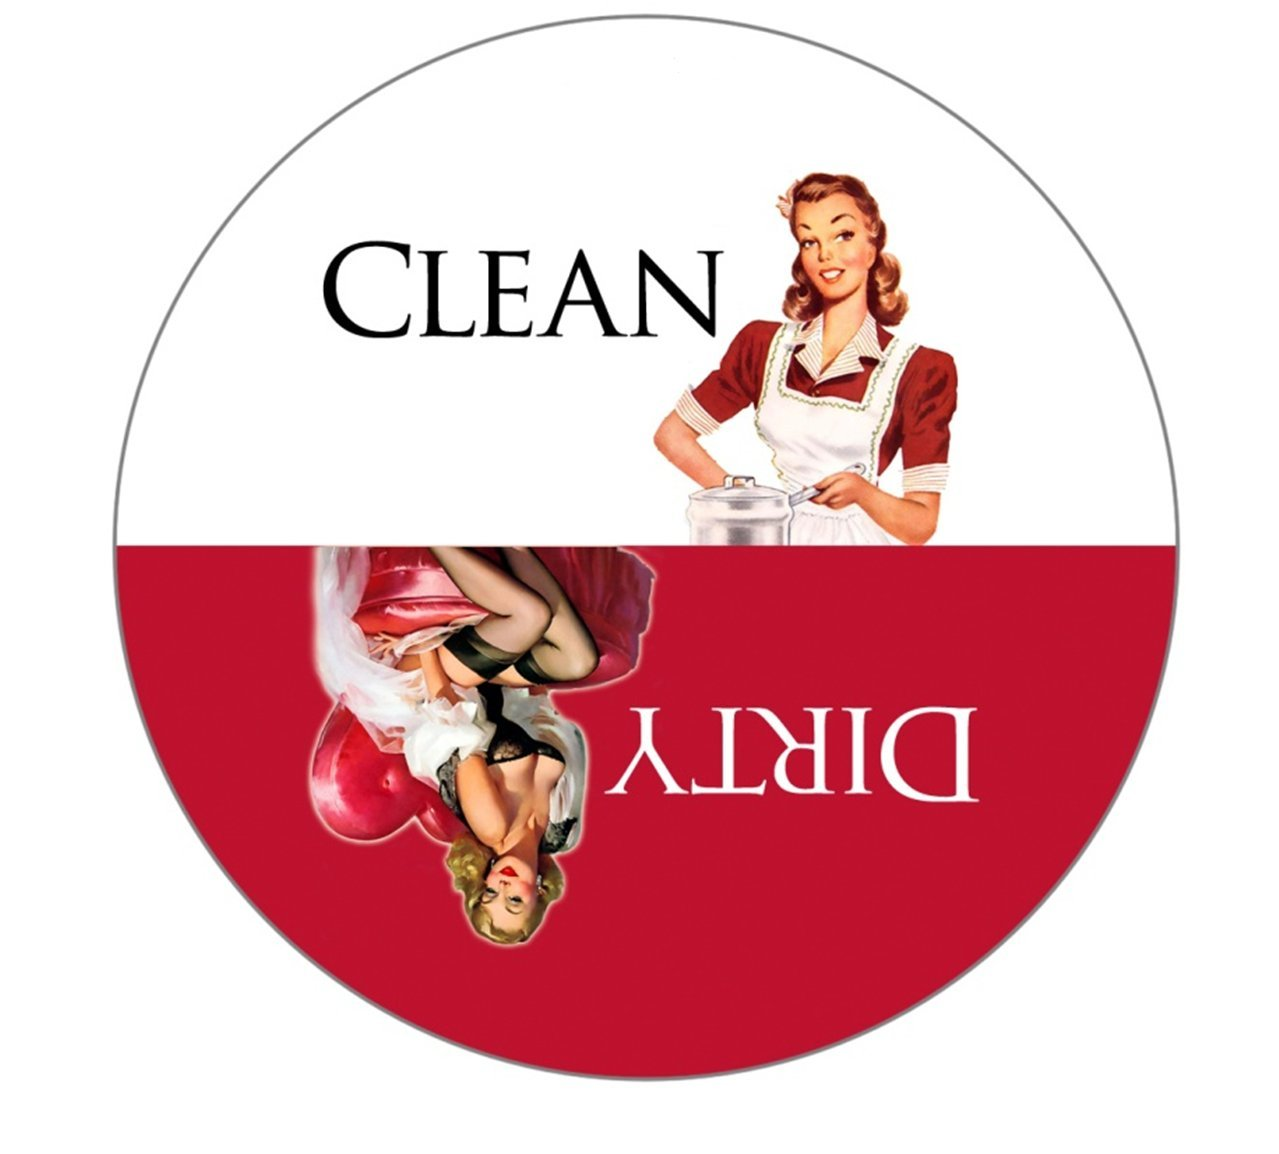 Clean Dirty Dishwasher Magnet Ends Kitchen Problem. Adheres to ANY Surface. Retro Housewife Theme. Red and White.100% Handmade in the USA.